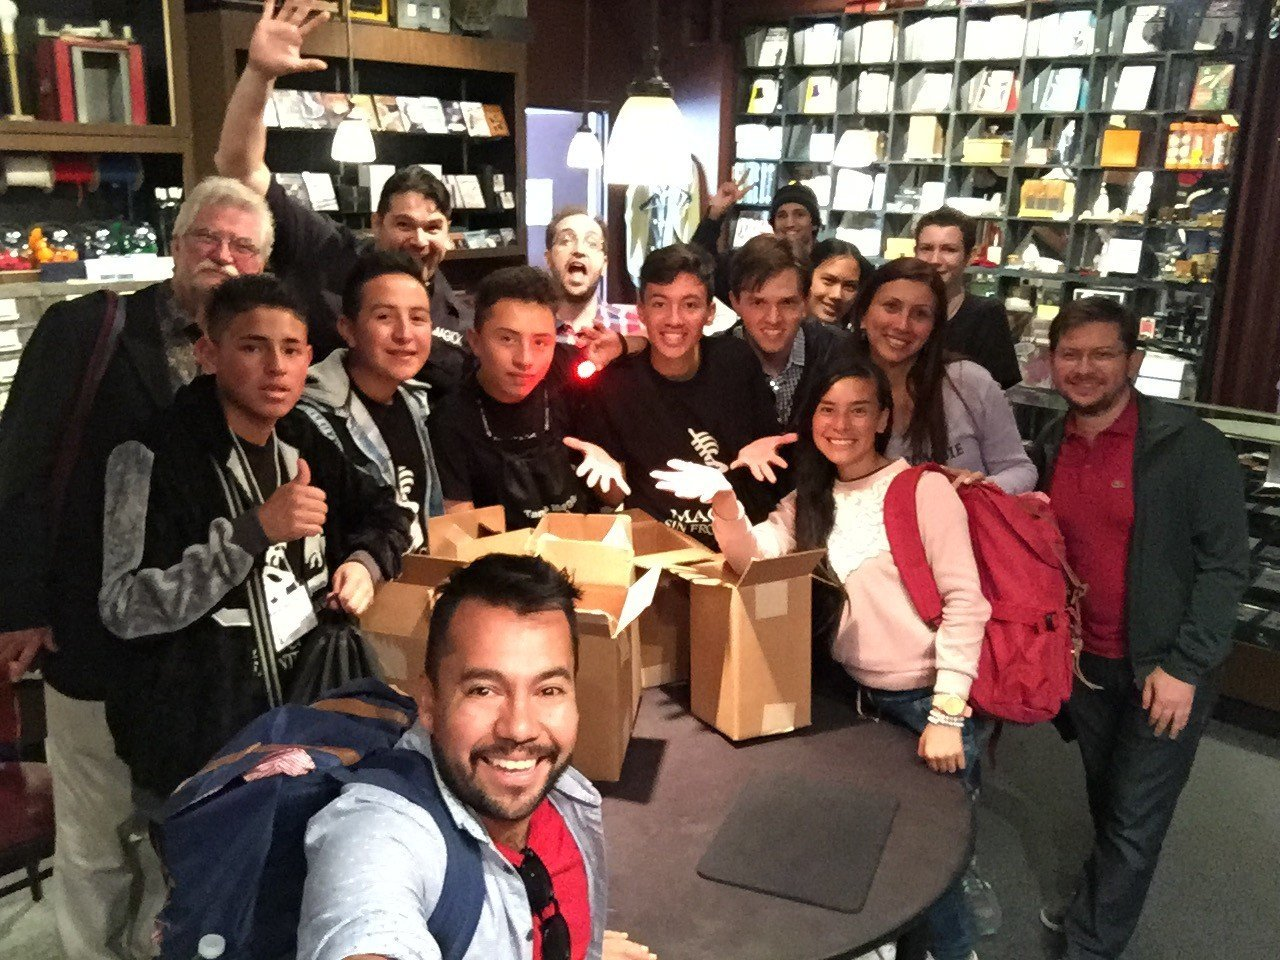 Kids of Magicians Without Borders in Tannen's magic in New york city